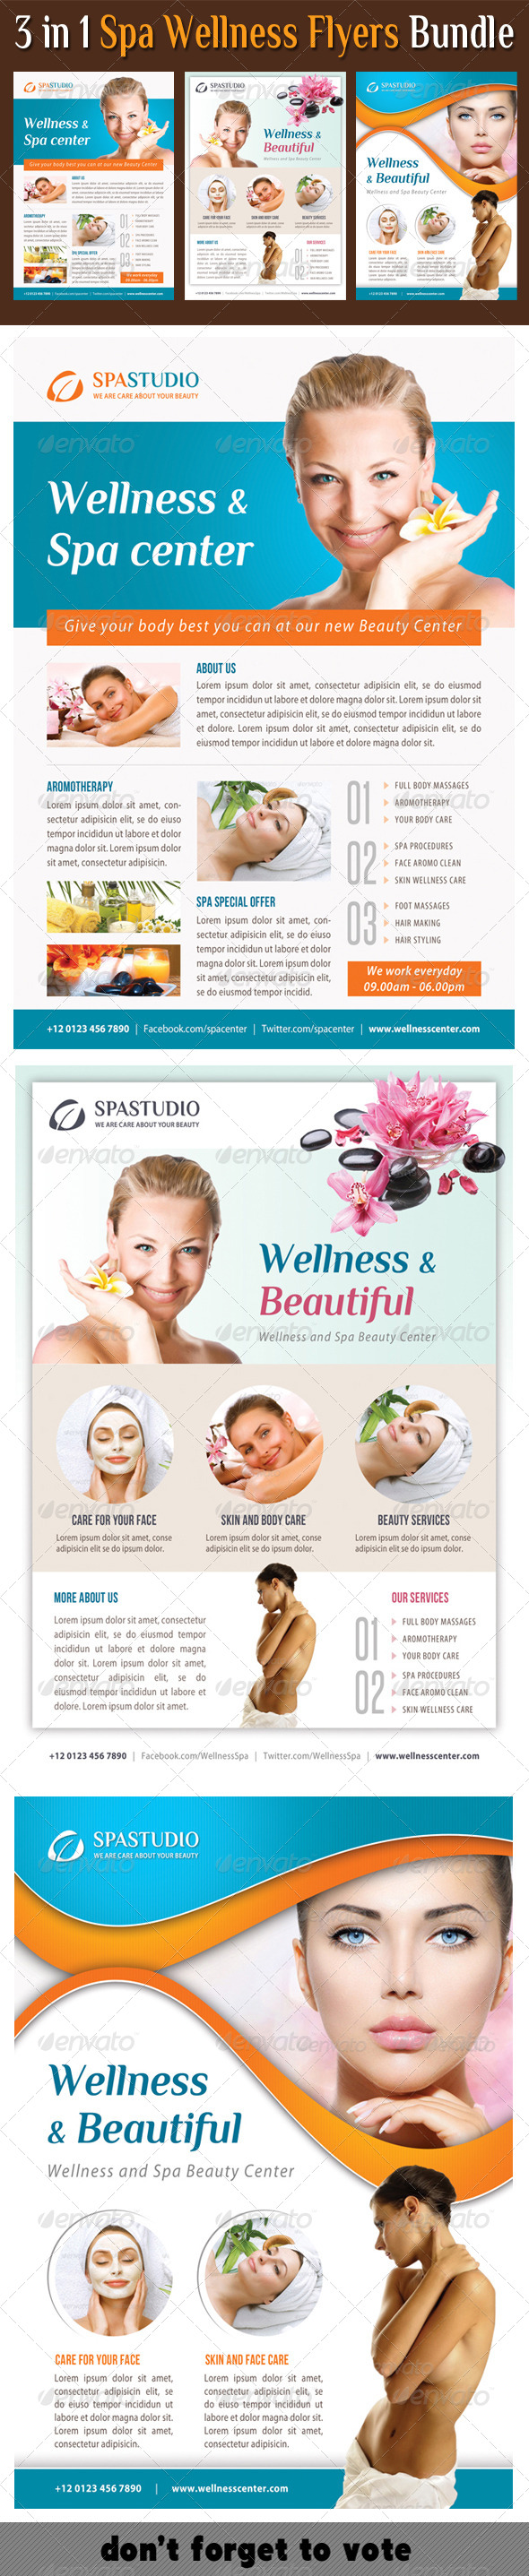 GraphicRiver 3 in 1 Spa Wellness Flyers Bundle 09 8313325